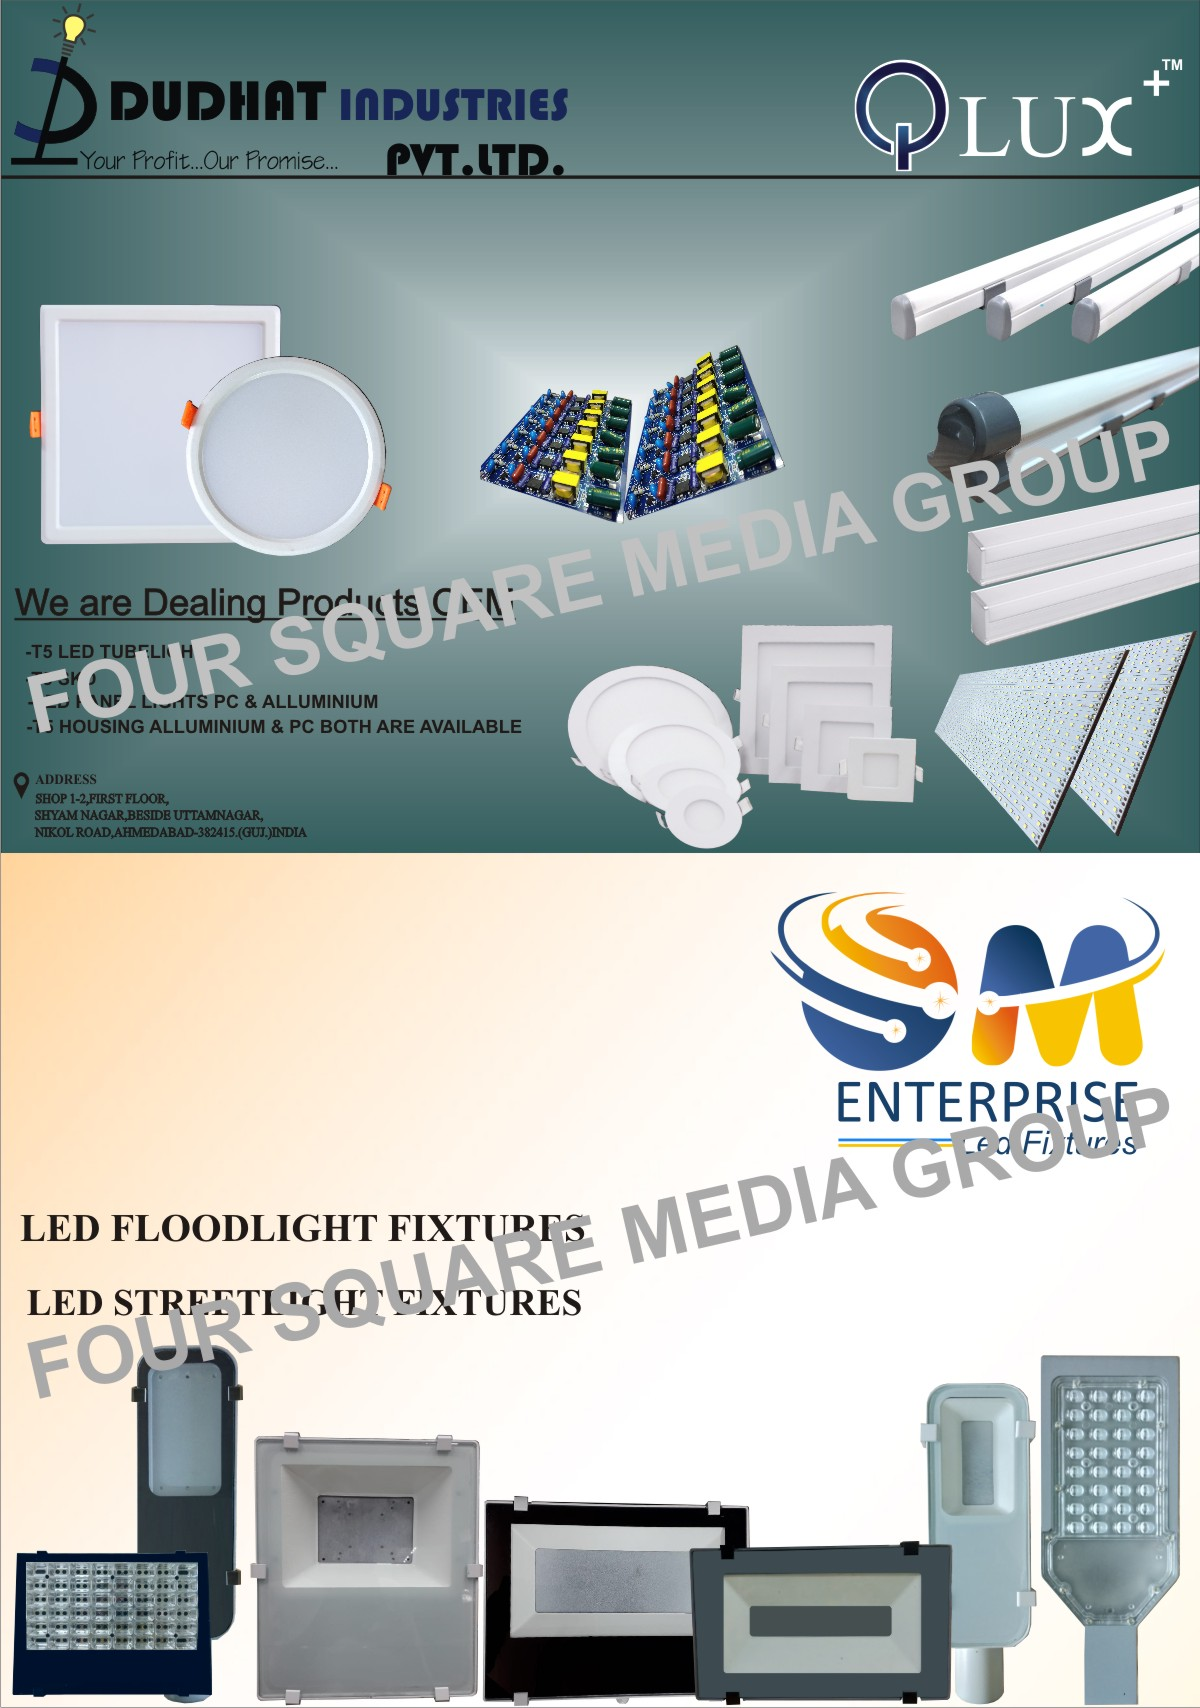 Led Wall Mounted Tube Light Housing, Led T5 Wall Mounted Tube Light Housing, Tube Light Led Drivers, Tube Light PCB, Tube Light Printed Circuit Board, Led Drivers, PCB, Printed Circuit Board, Panel Light Flexible PCB, Panel Light PCB, Panel Light Flexible Printed Circuit Board, Panel Light Printed Circuit Boards, T5 Led SKD